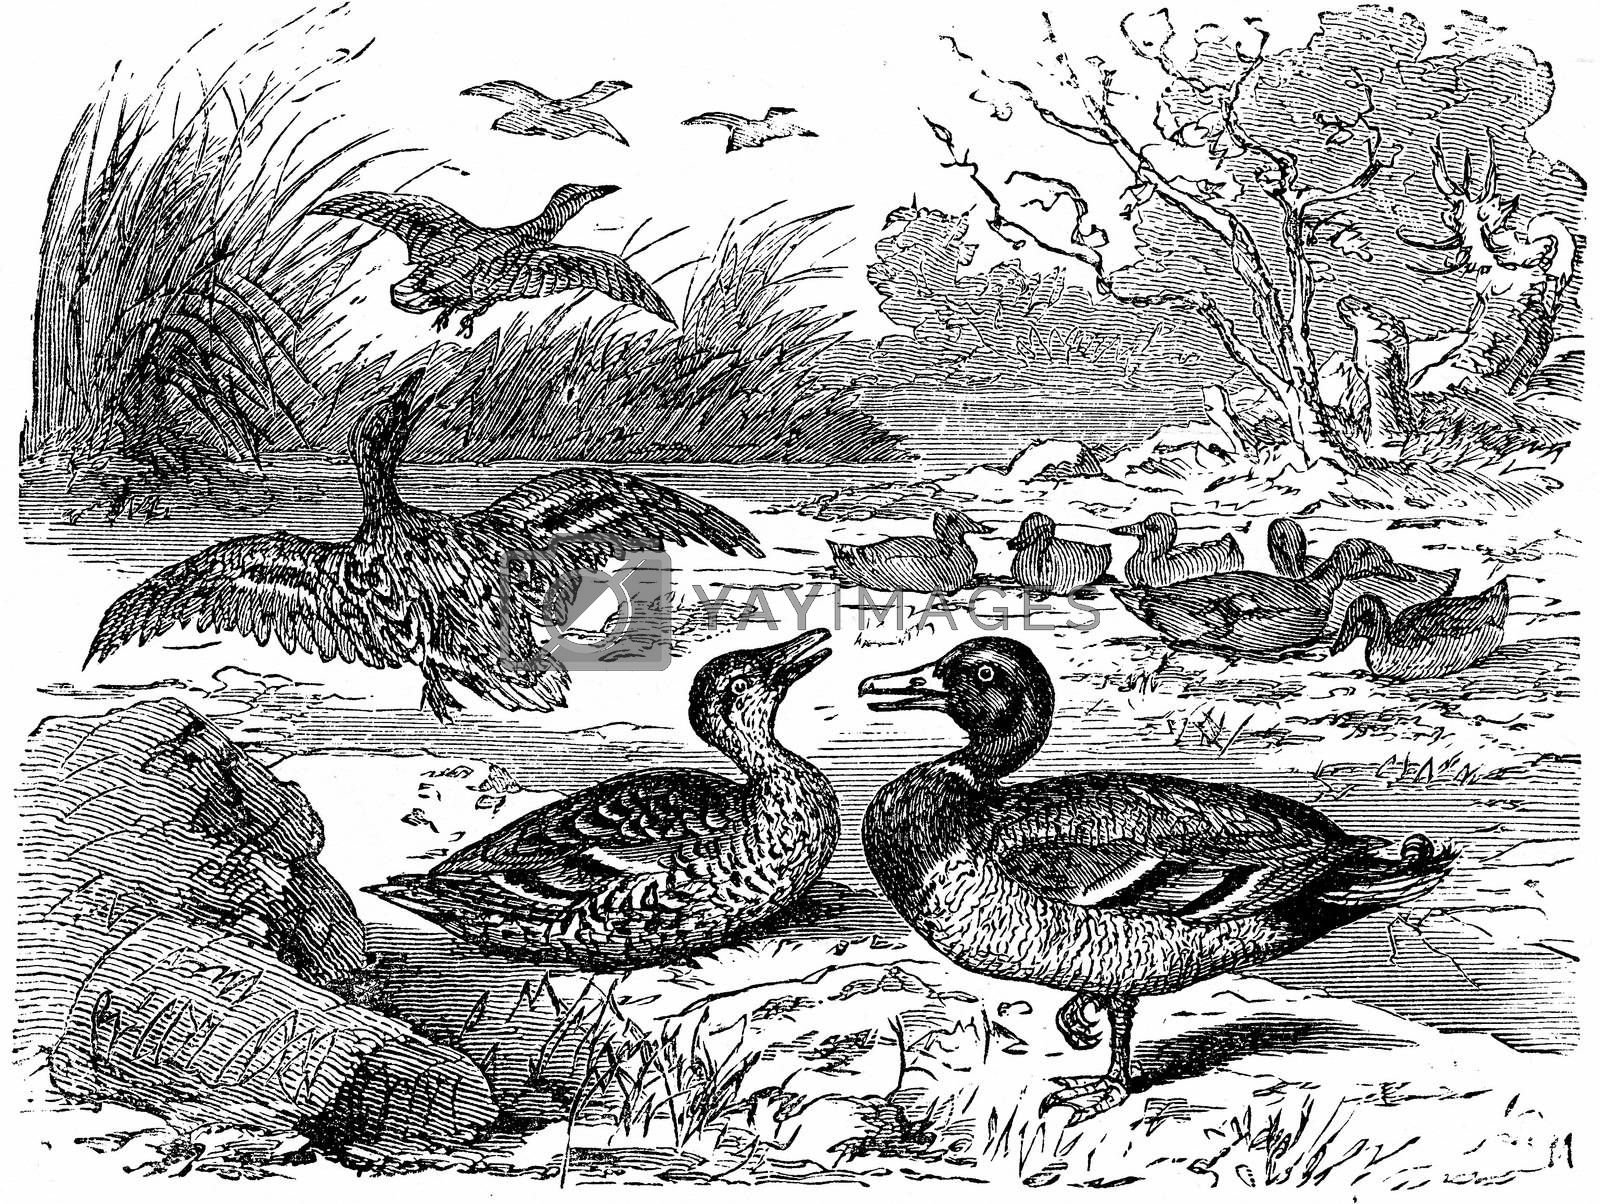 Wild ducks, vintage engraved illustration. From La Vie dans la nature, 1890.